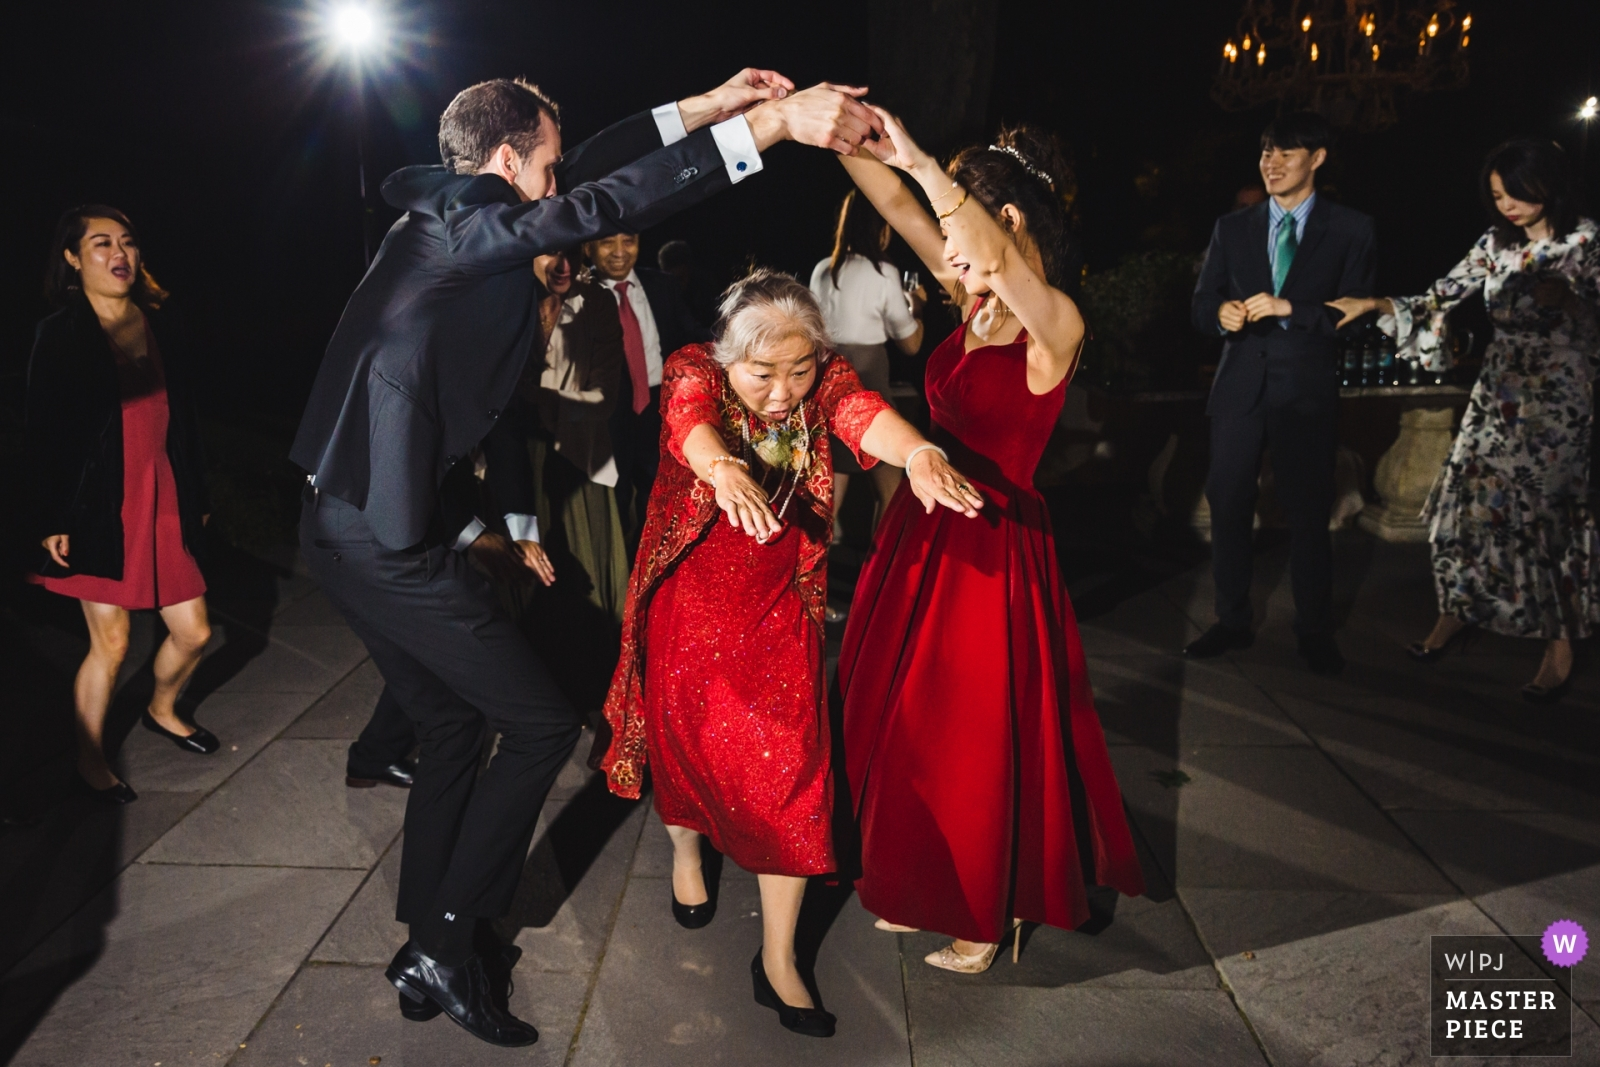 All ages are enjoying the dancing party at the wedding.  - New York - Long Island, United States Wedding Photography -  | The North Shore House